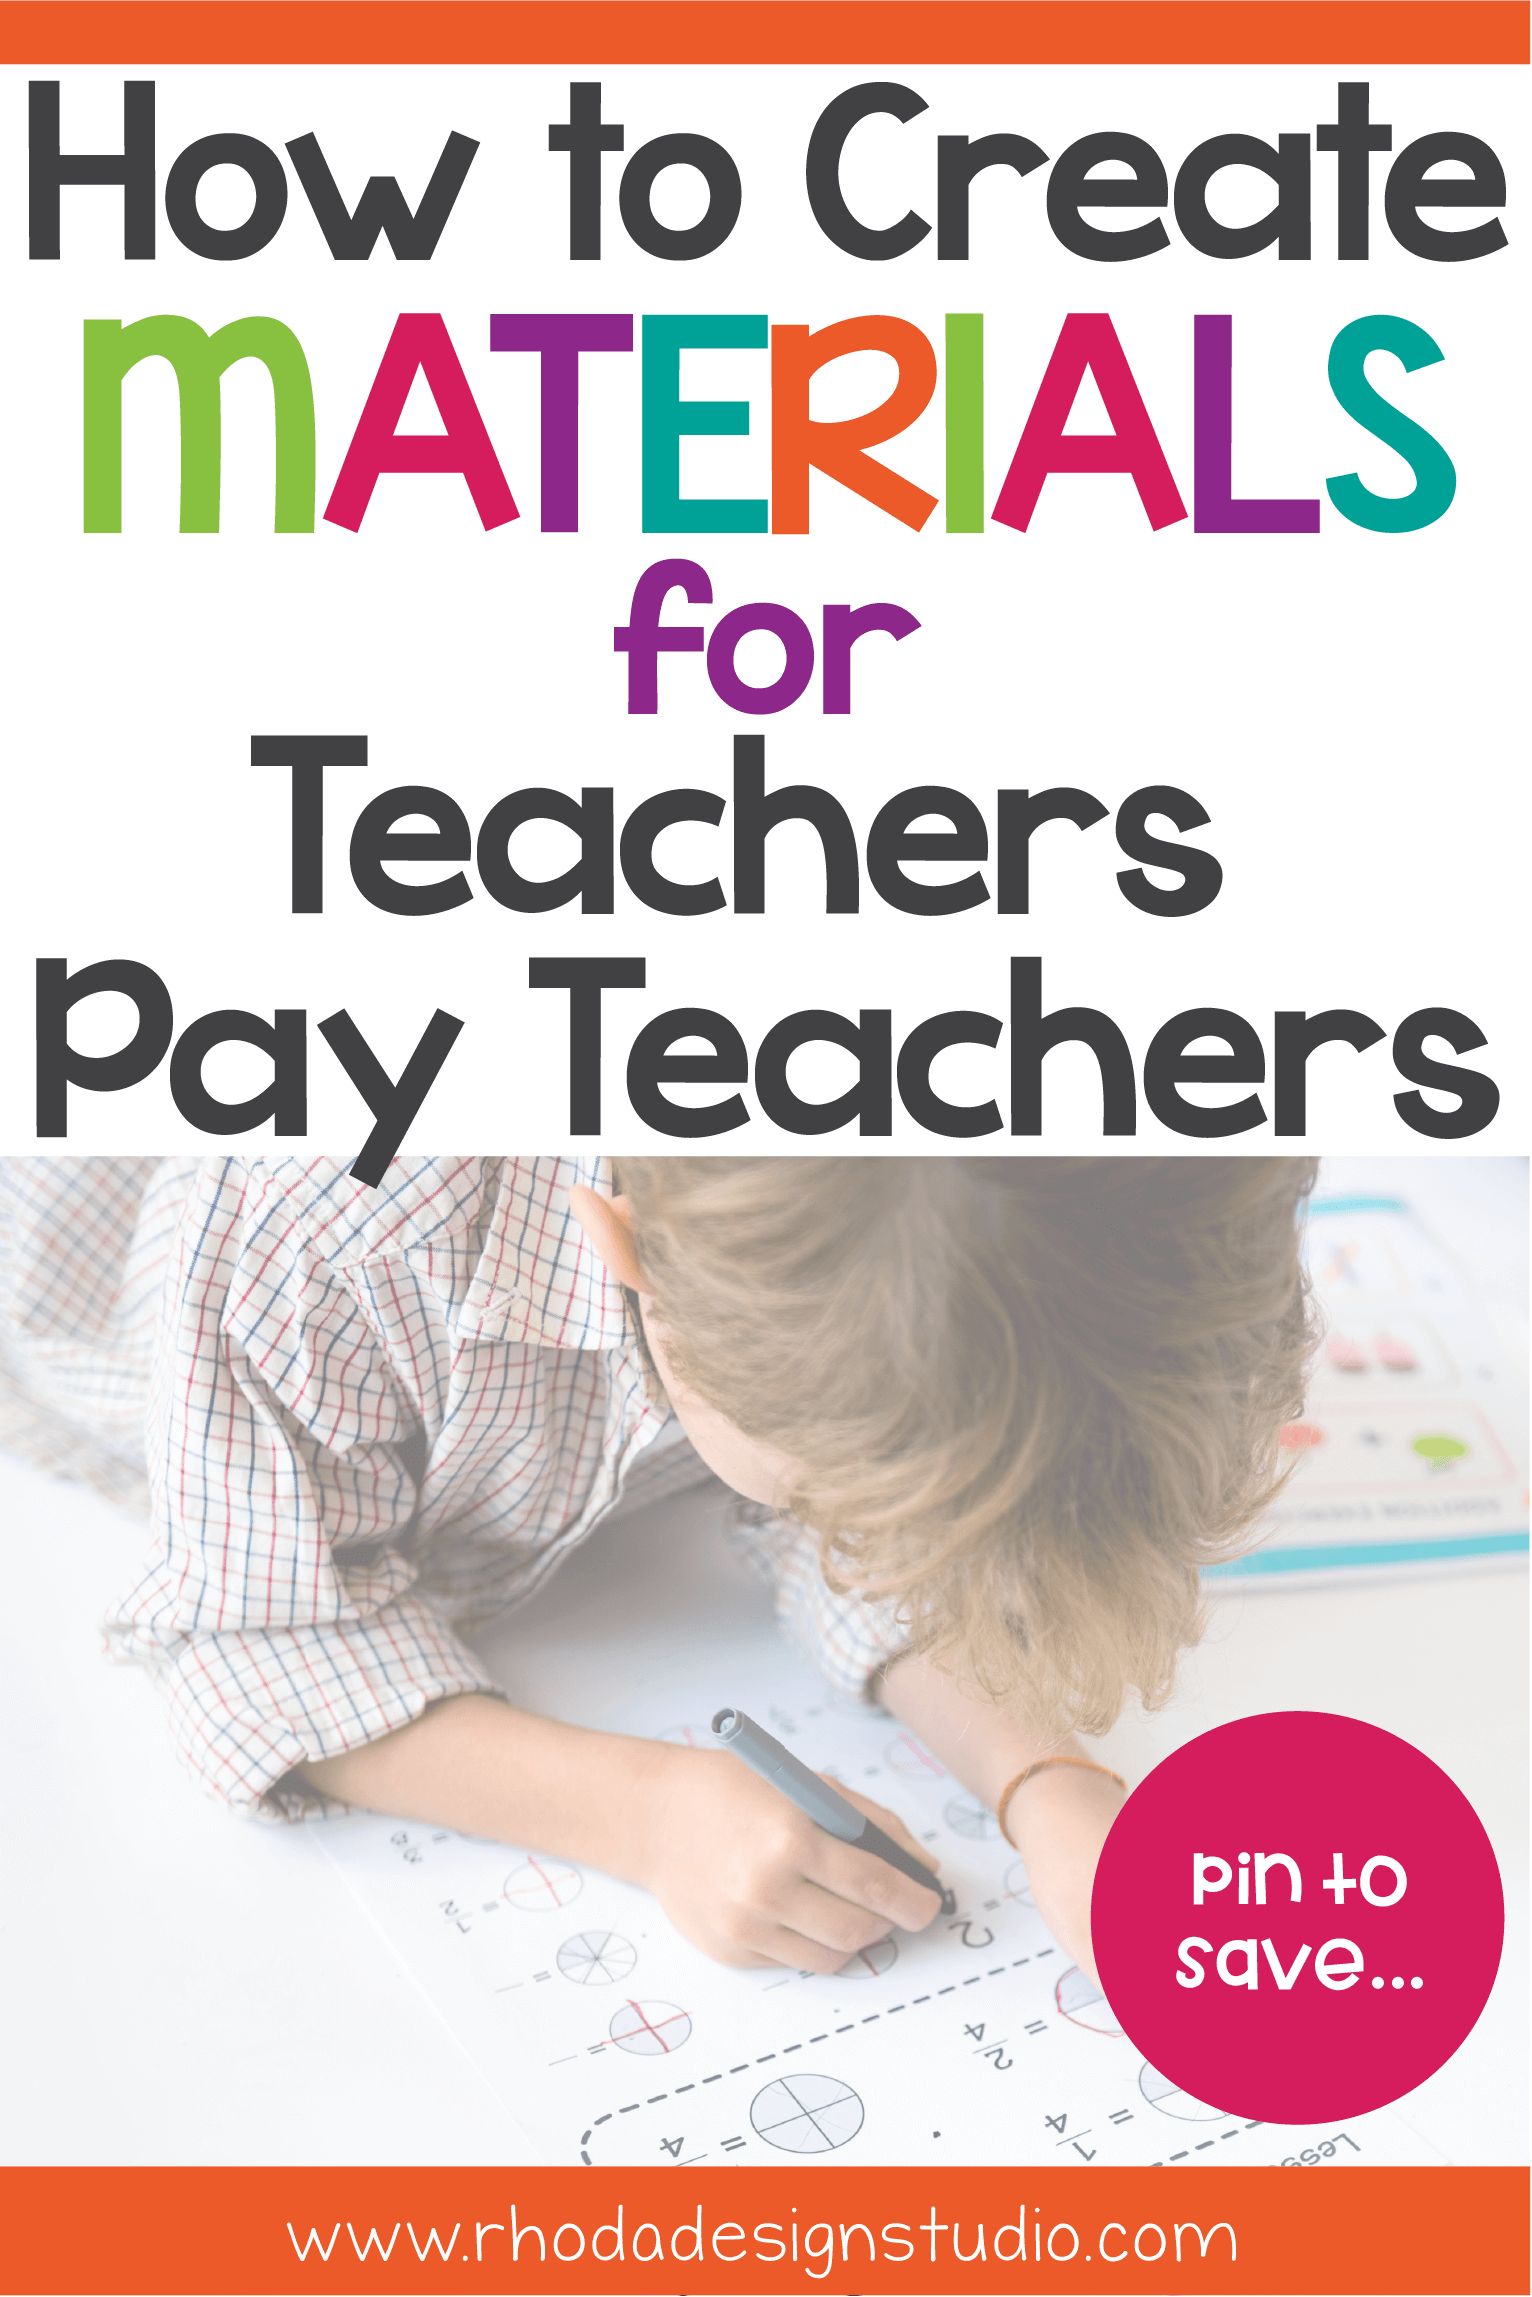 How to create materials for Teachers Pay Teachers. 10 tips to learn the first steps that will teach you how to make products for Teachers Pay Teachers and how to create worksheets. Learn the things you will need to make Teachers Pay Teachers products. All the things you need to start selling on Teachers Pay Teachers. #rhodadesignstudio